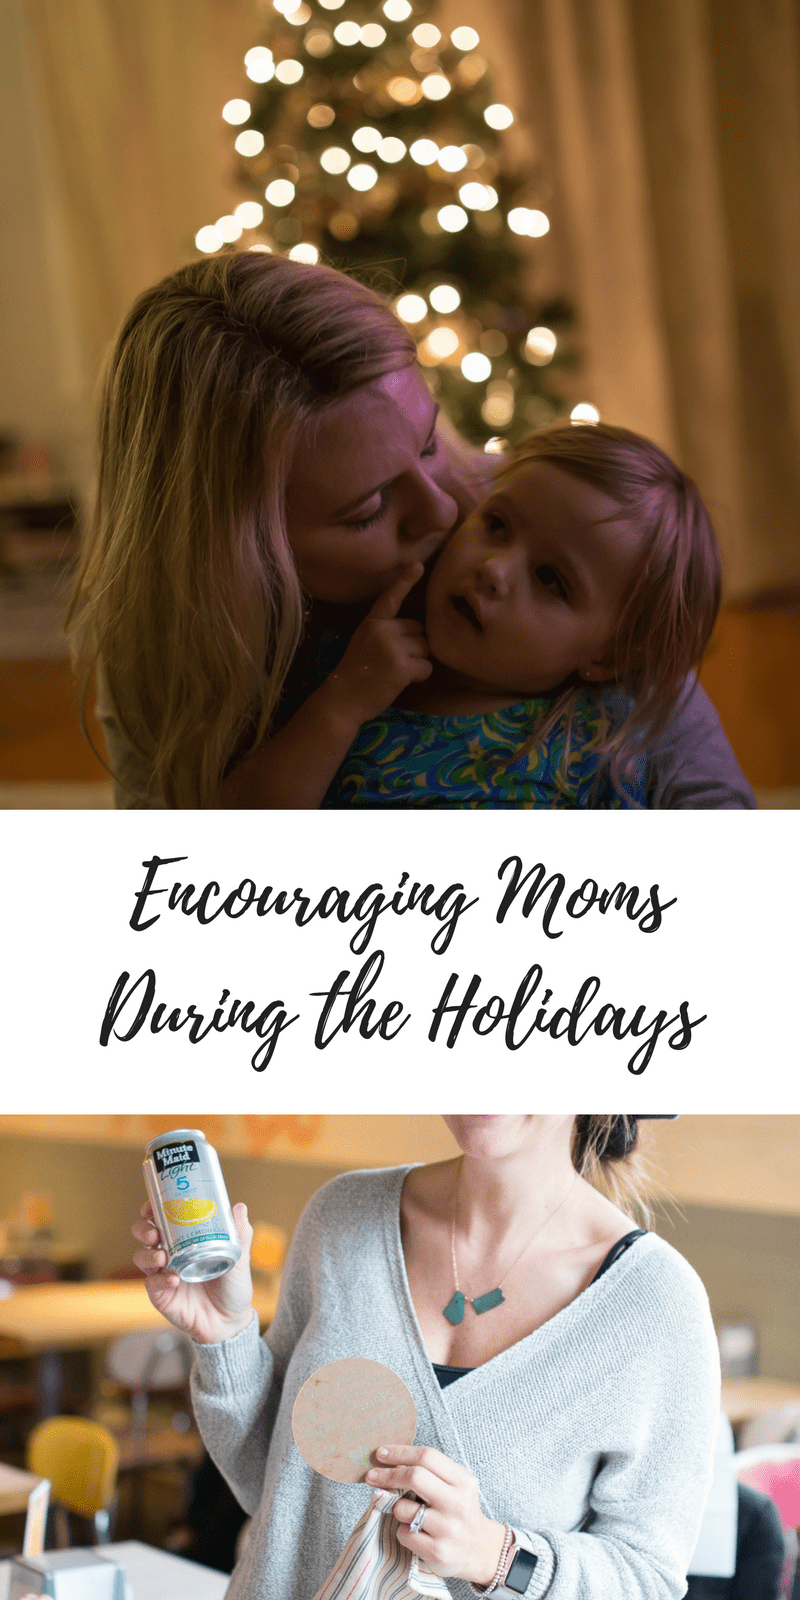 Encouraging moms during the holidays